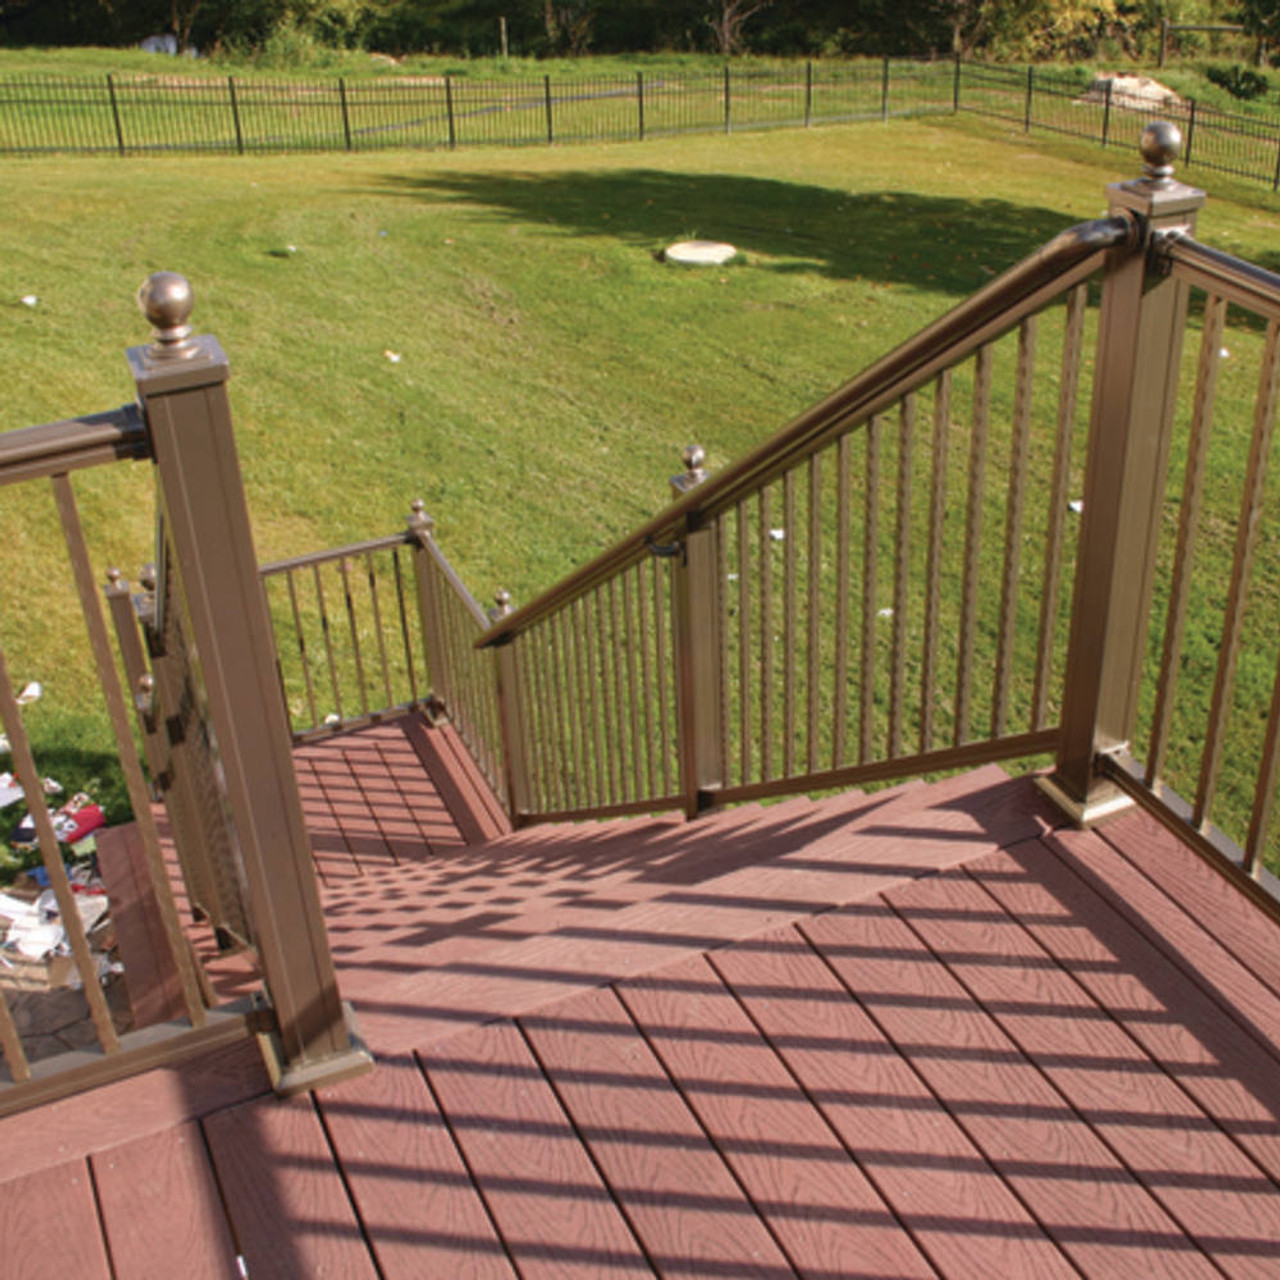 Key-Link Arabian Series Stair Railing with Hammered Balusters in Gloss Bronze